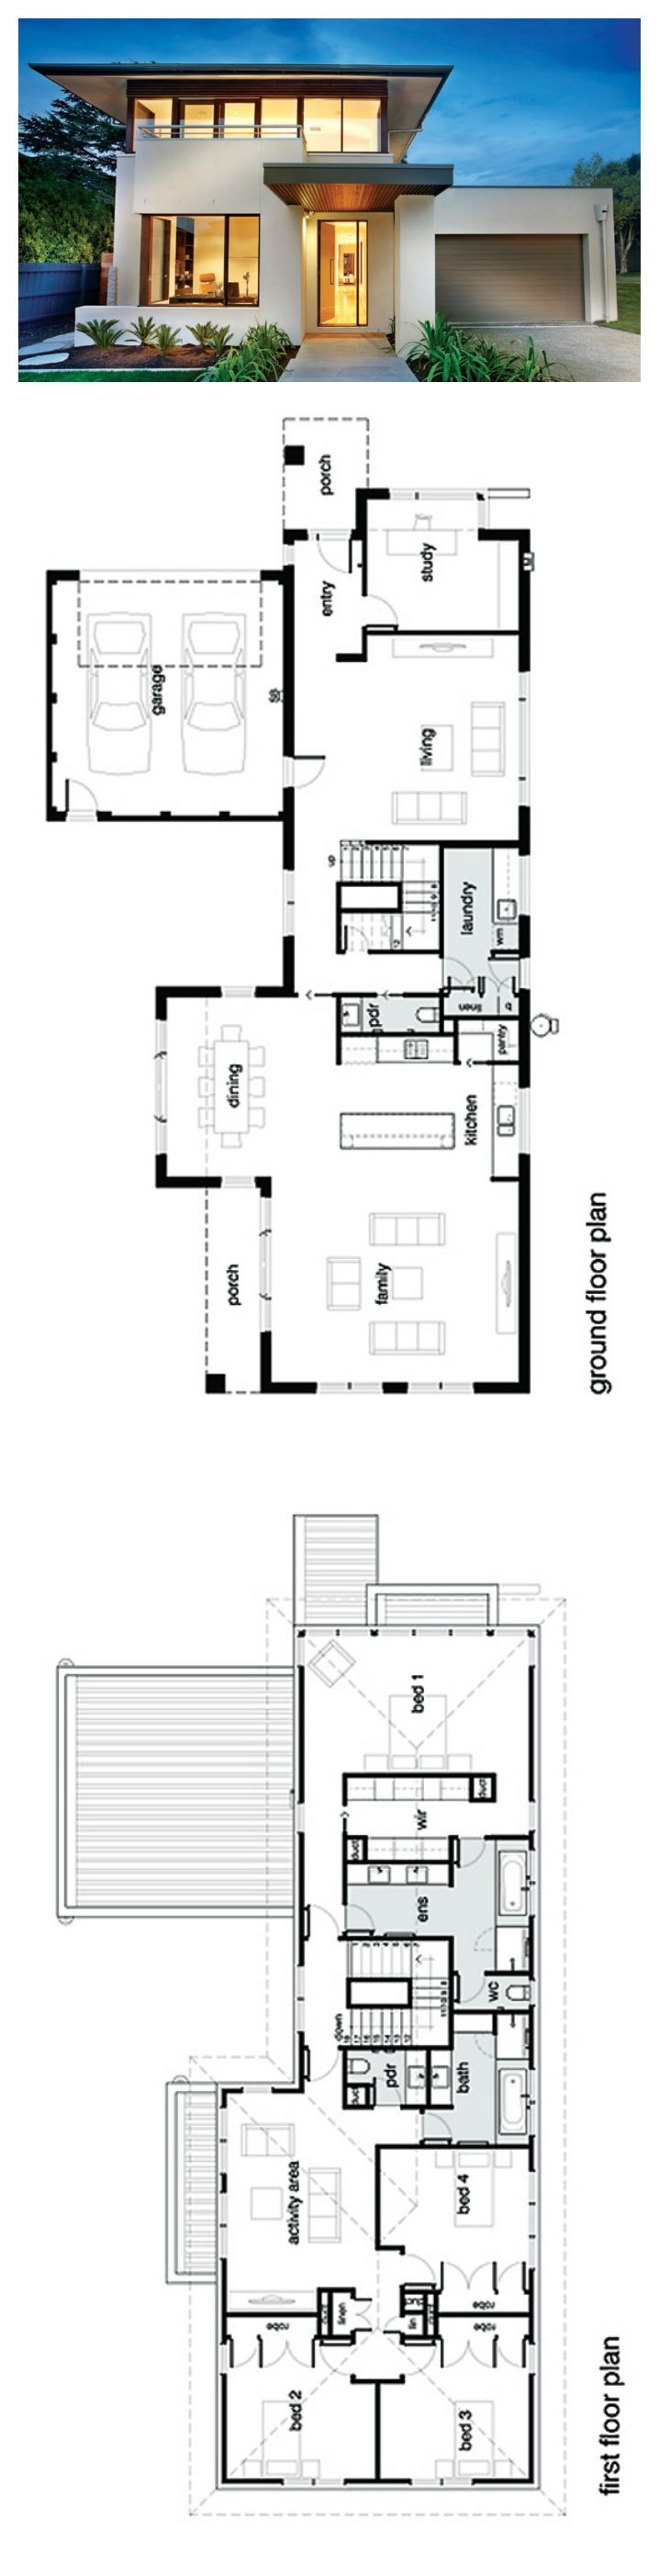 The 25 best ideas about modern house plans on pinterest for 4 room 2 bathroom house